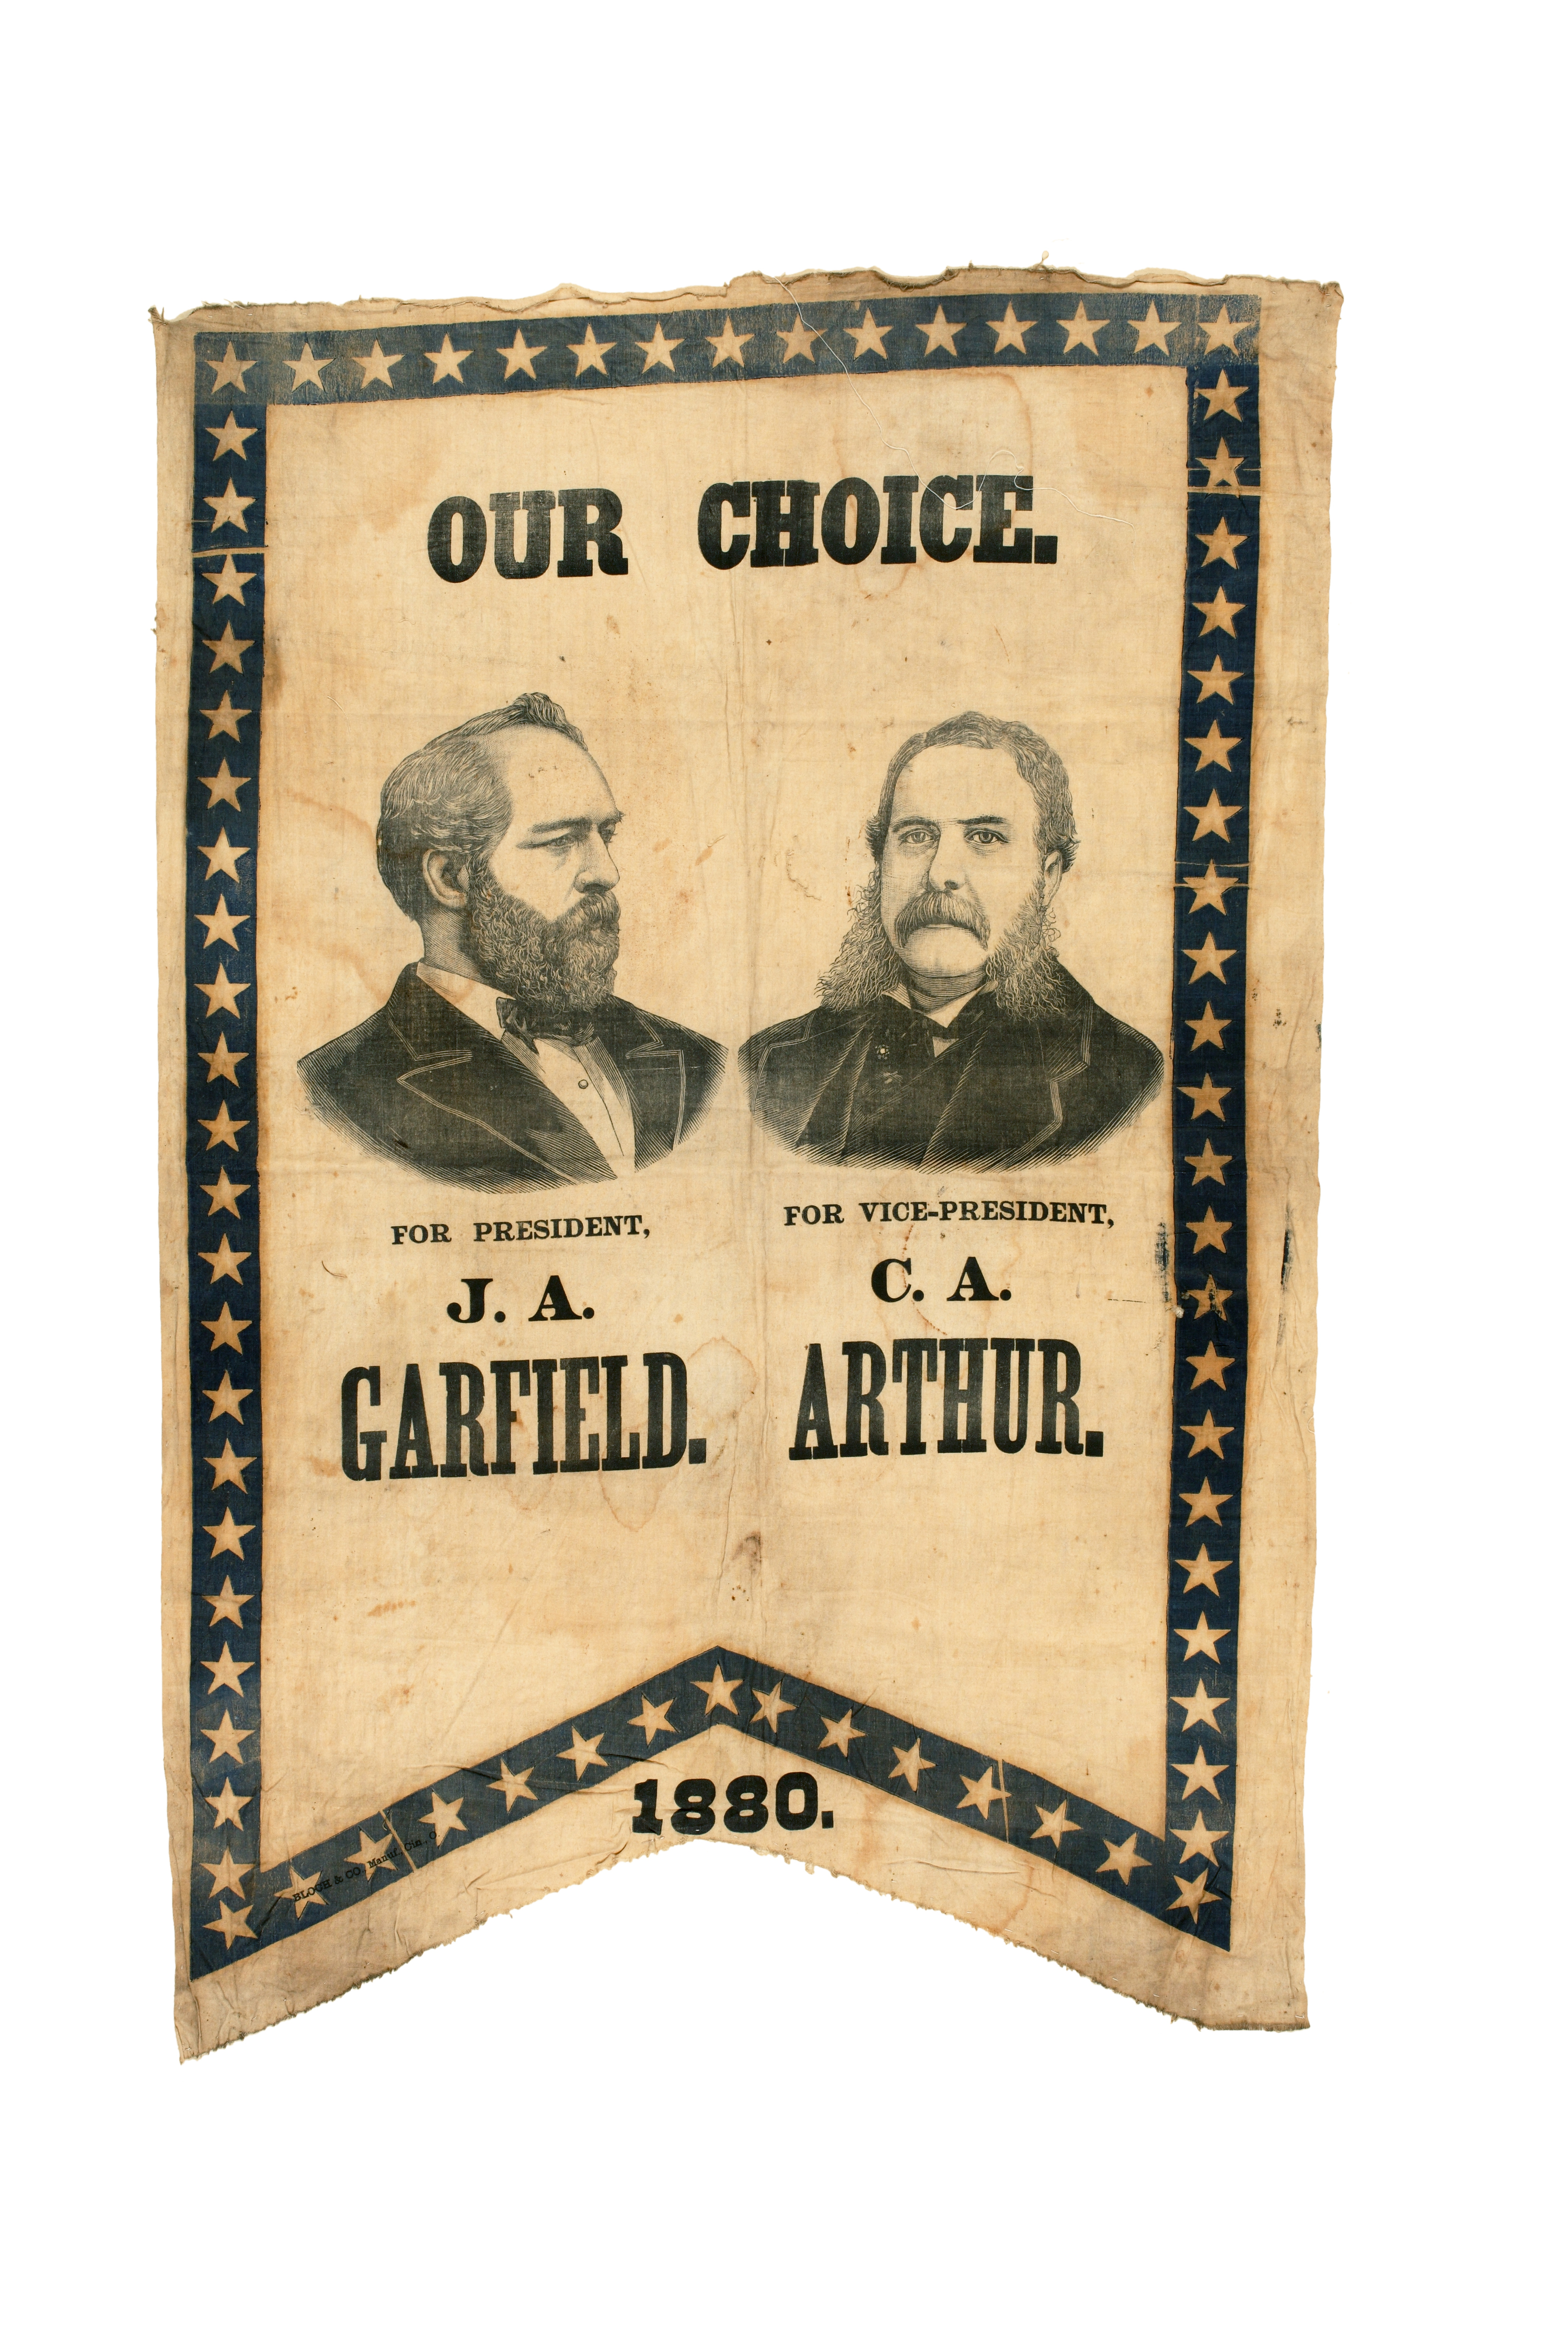 Garfield and Arthur presidential campaign banner